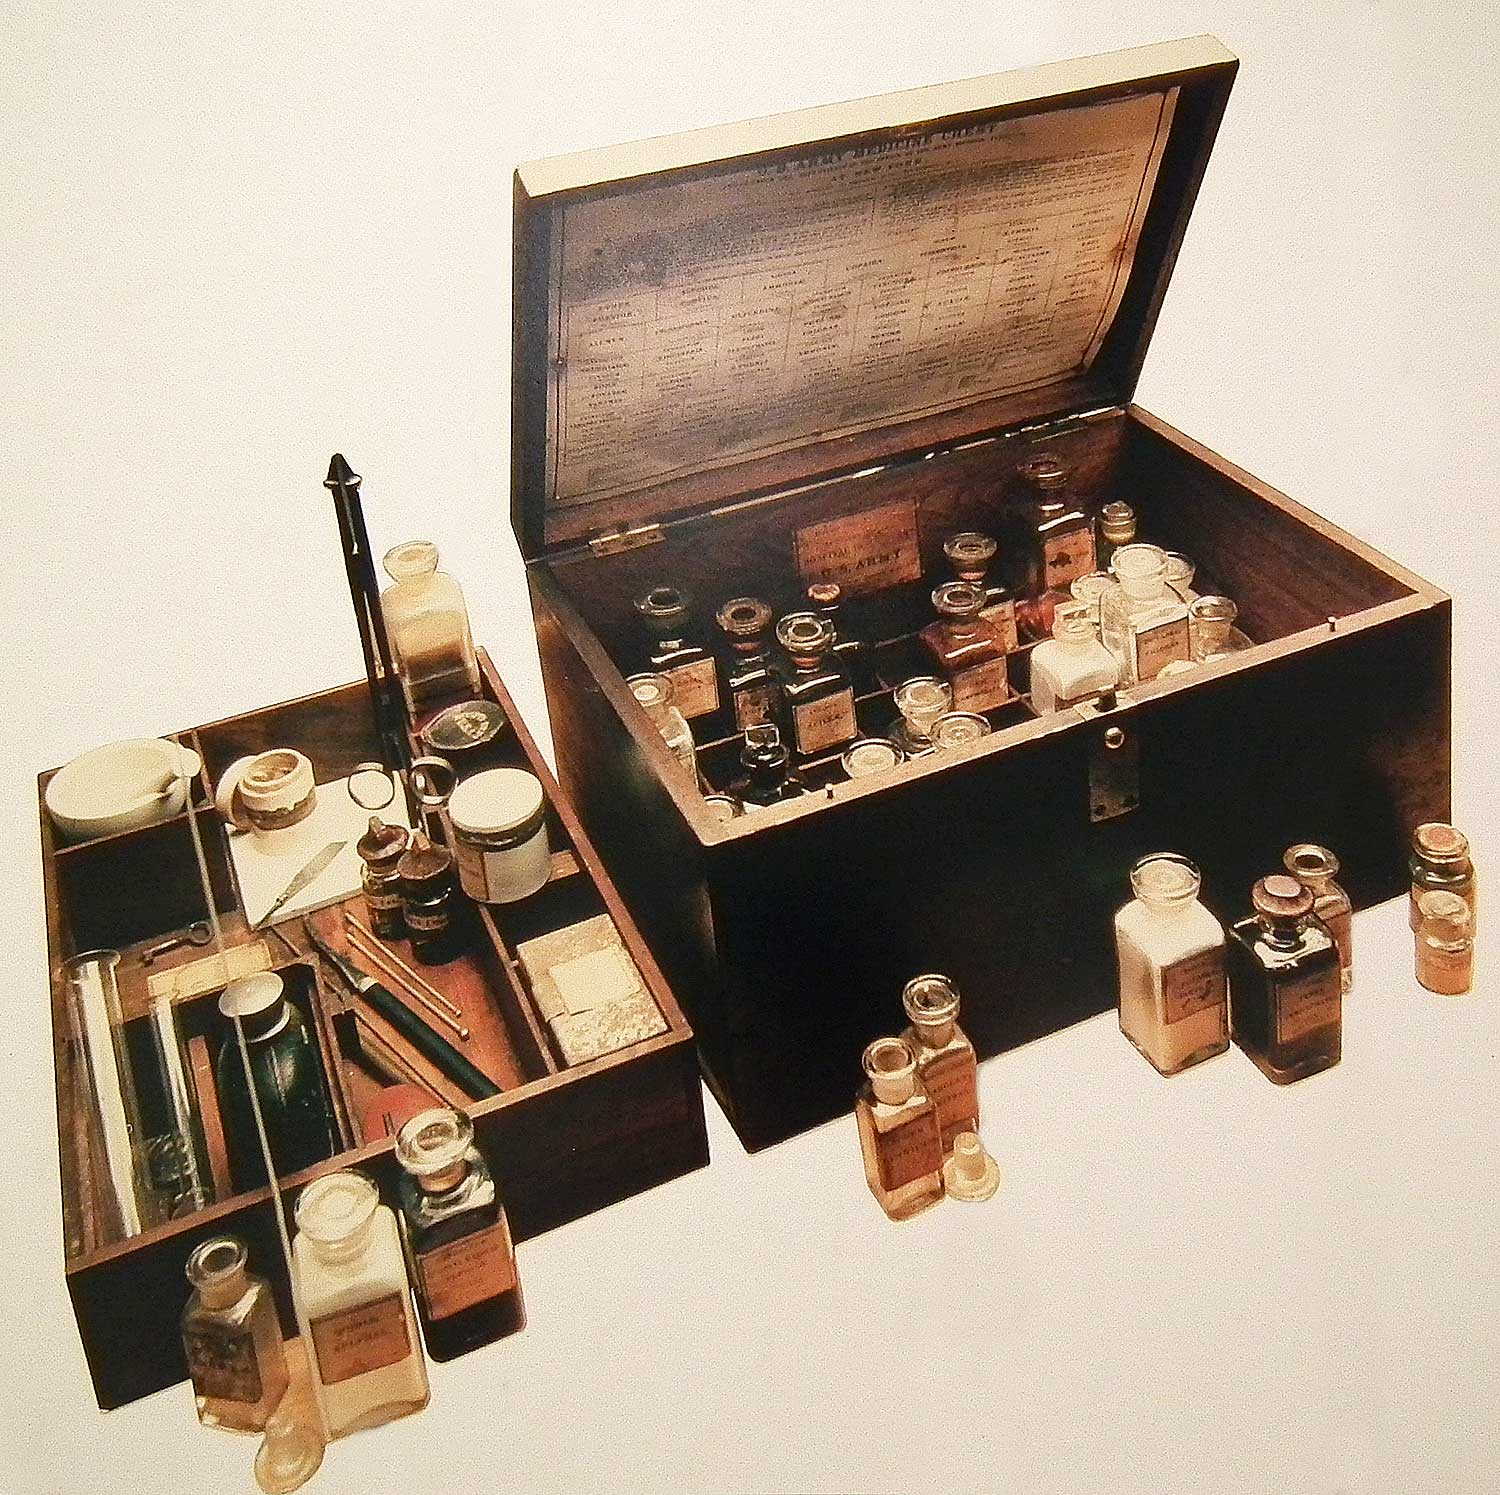 SQUIBB MEDICINE CHEST